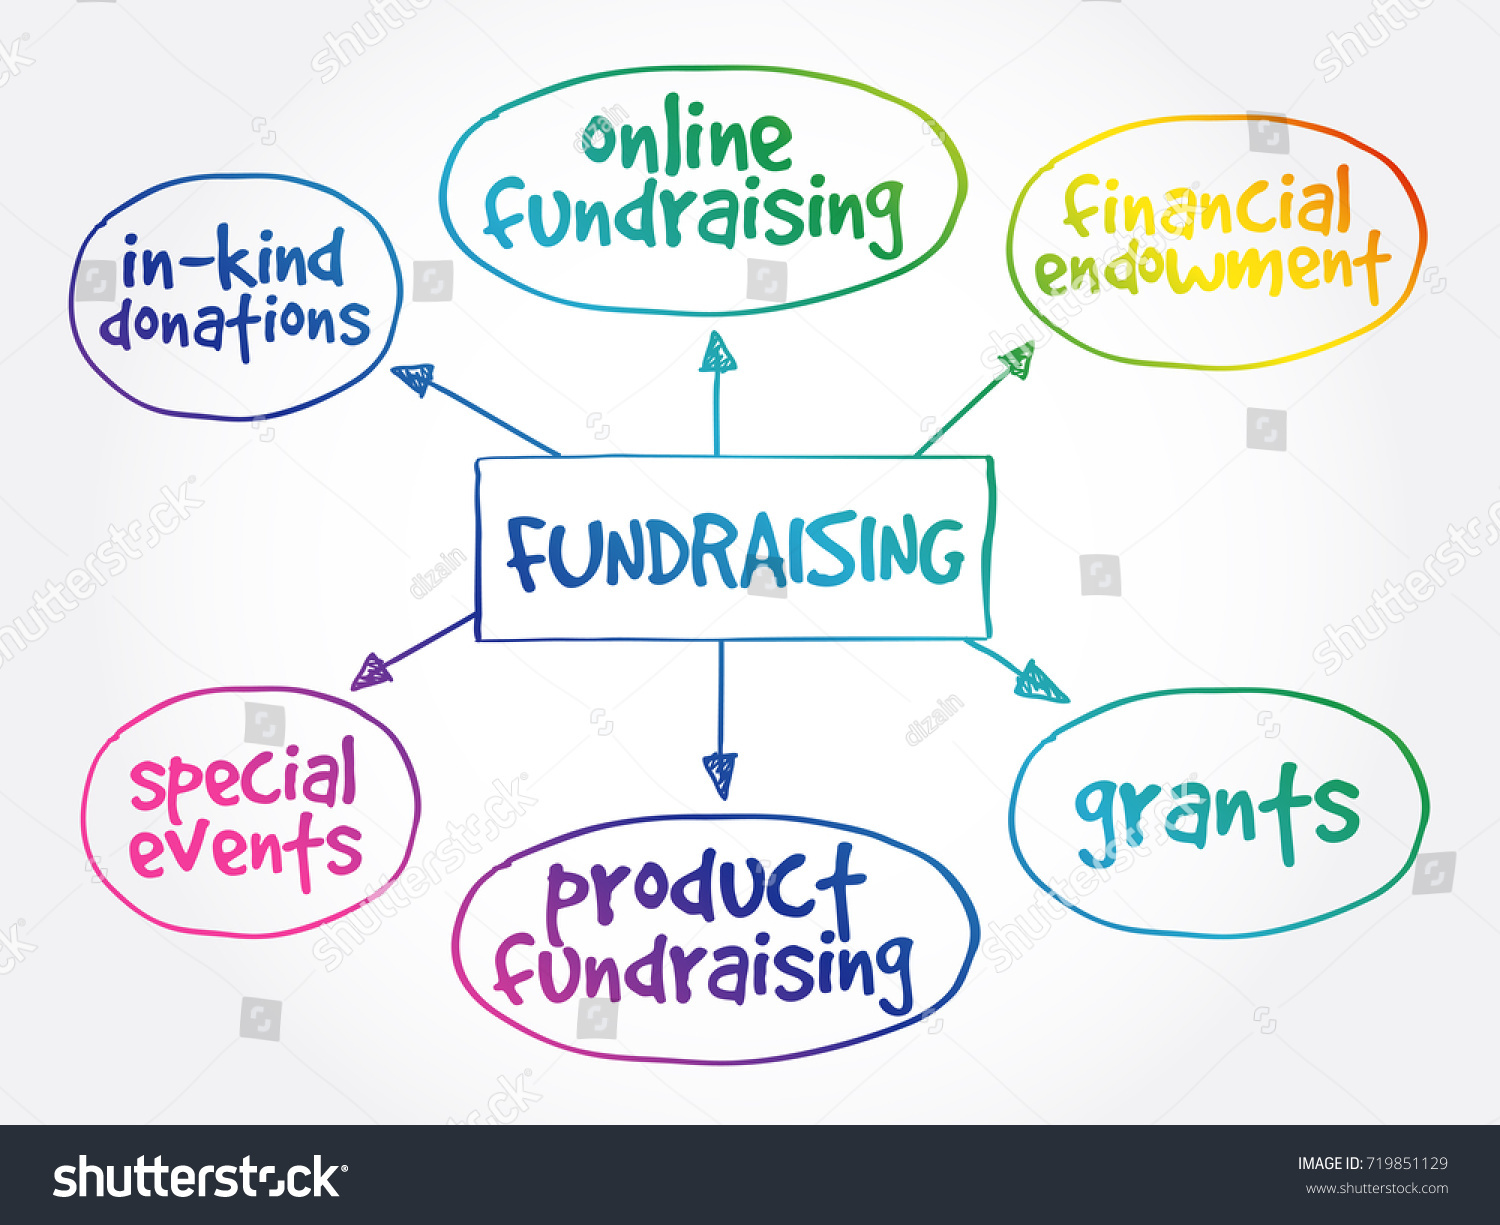 how to make a mind map online rewiring a motorcycle stock vector fundraising mind map business - Making A Mind Map Online